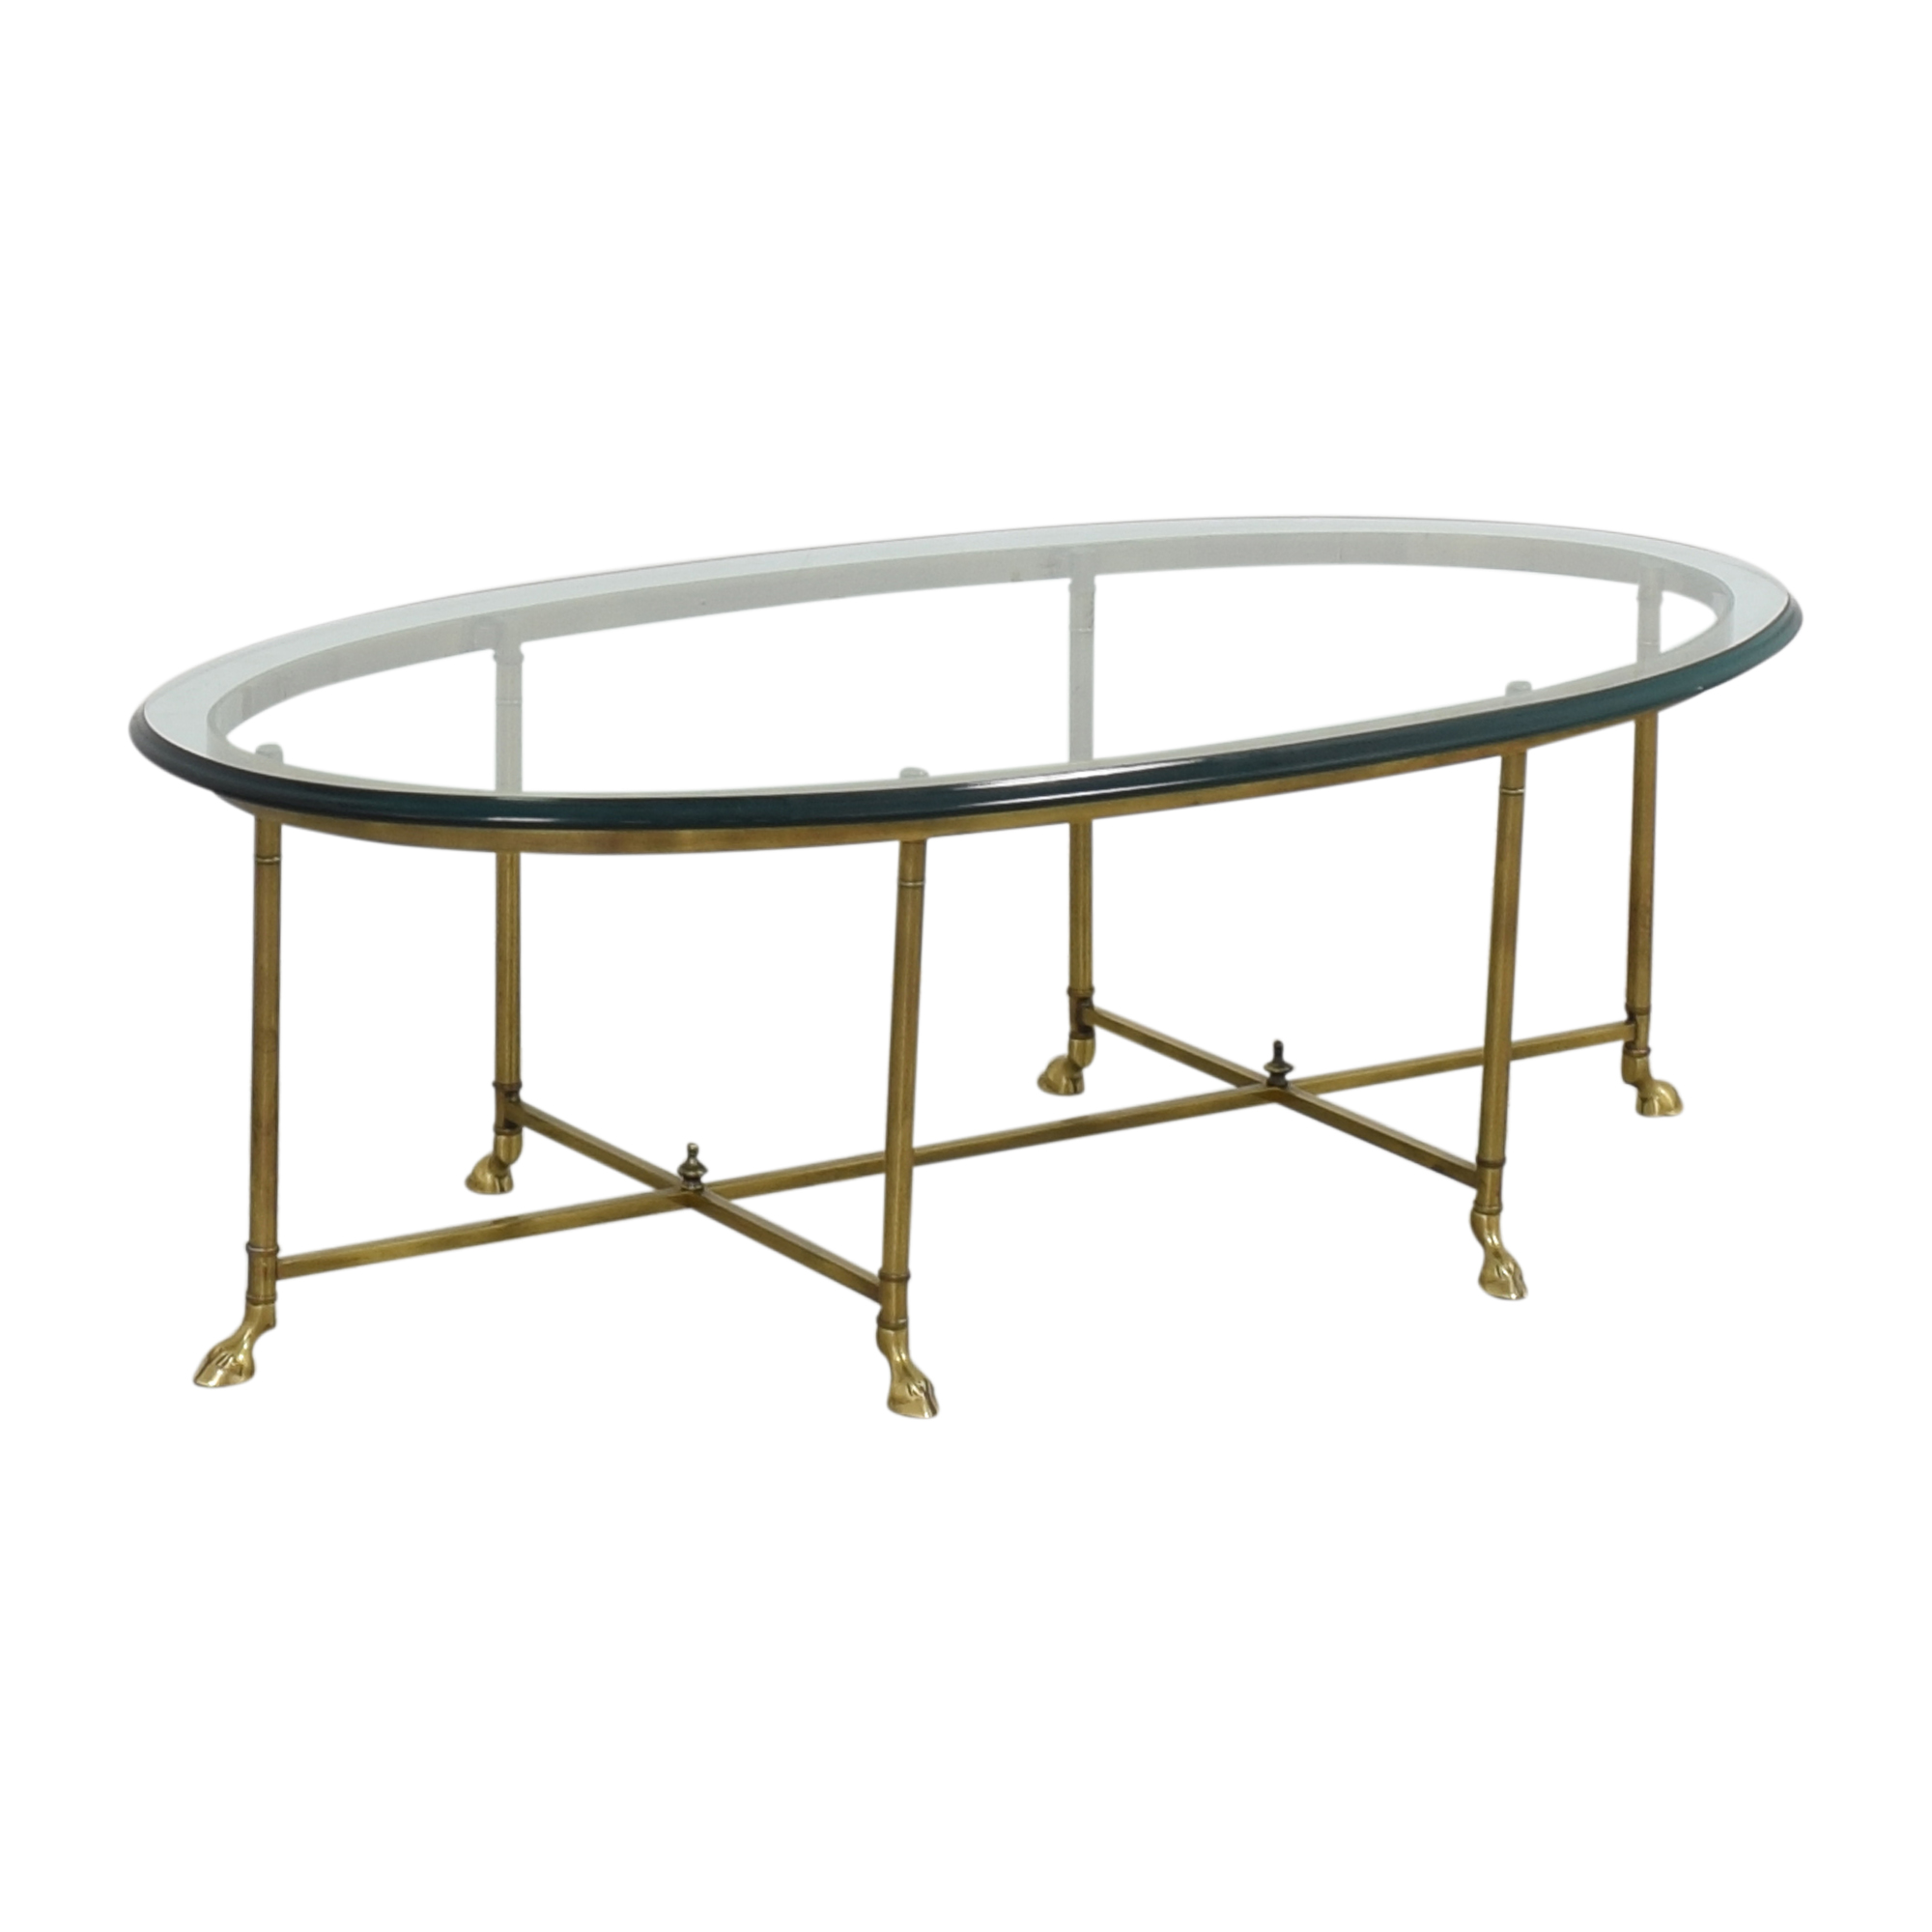 Stickley Furniture Stickley Furniture Oval Cocktail Table nyc